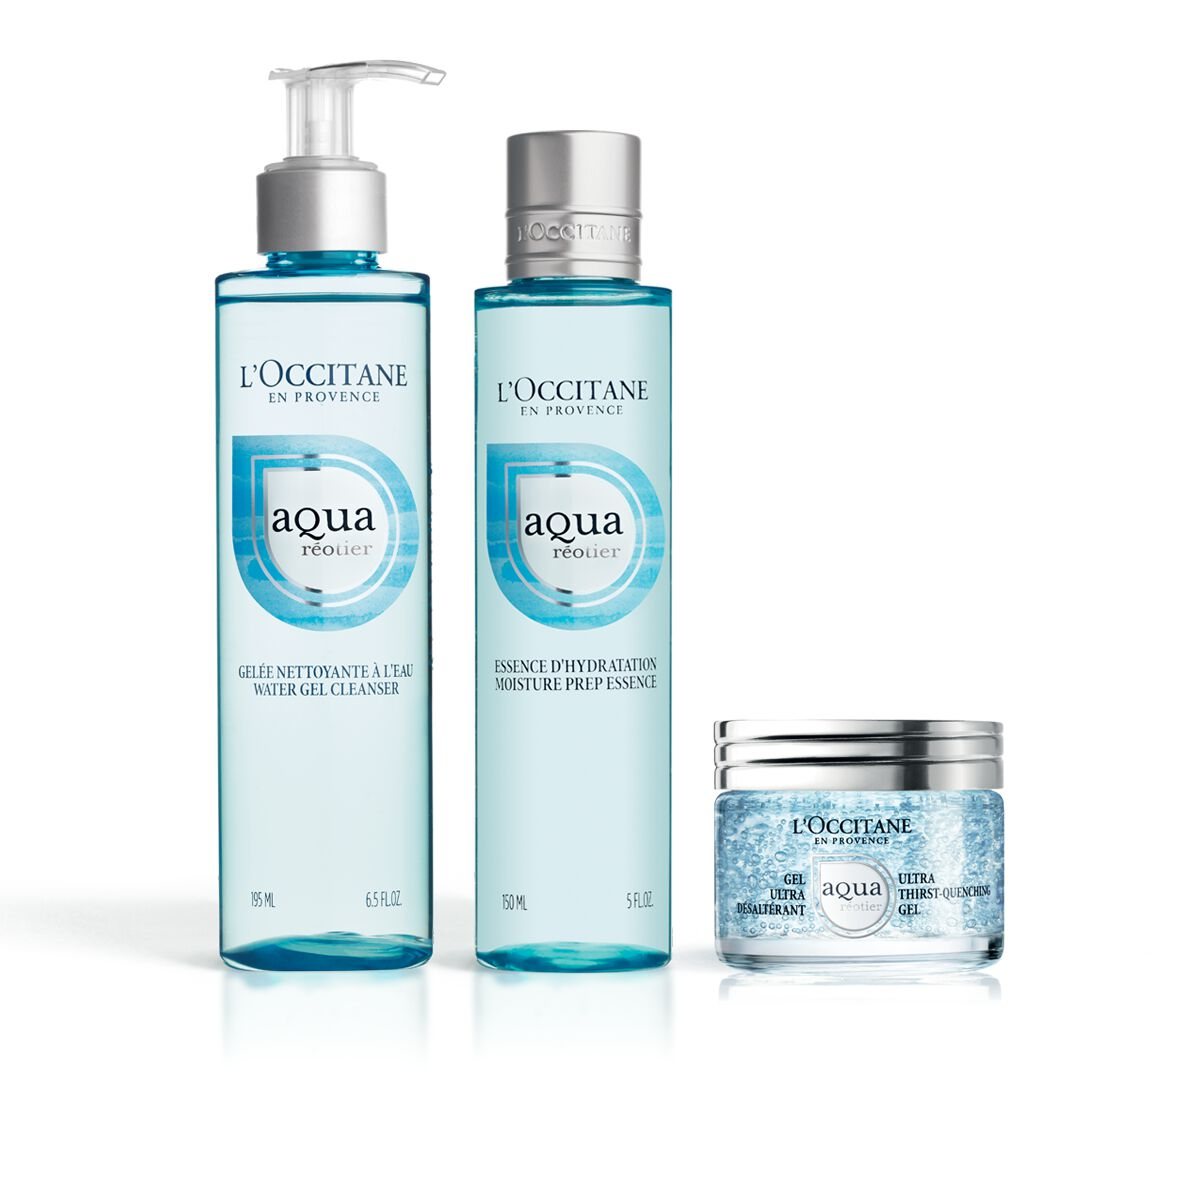 Aqua Cleansing Trio